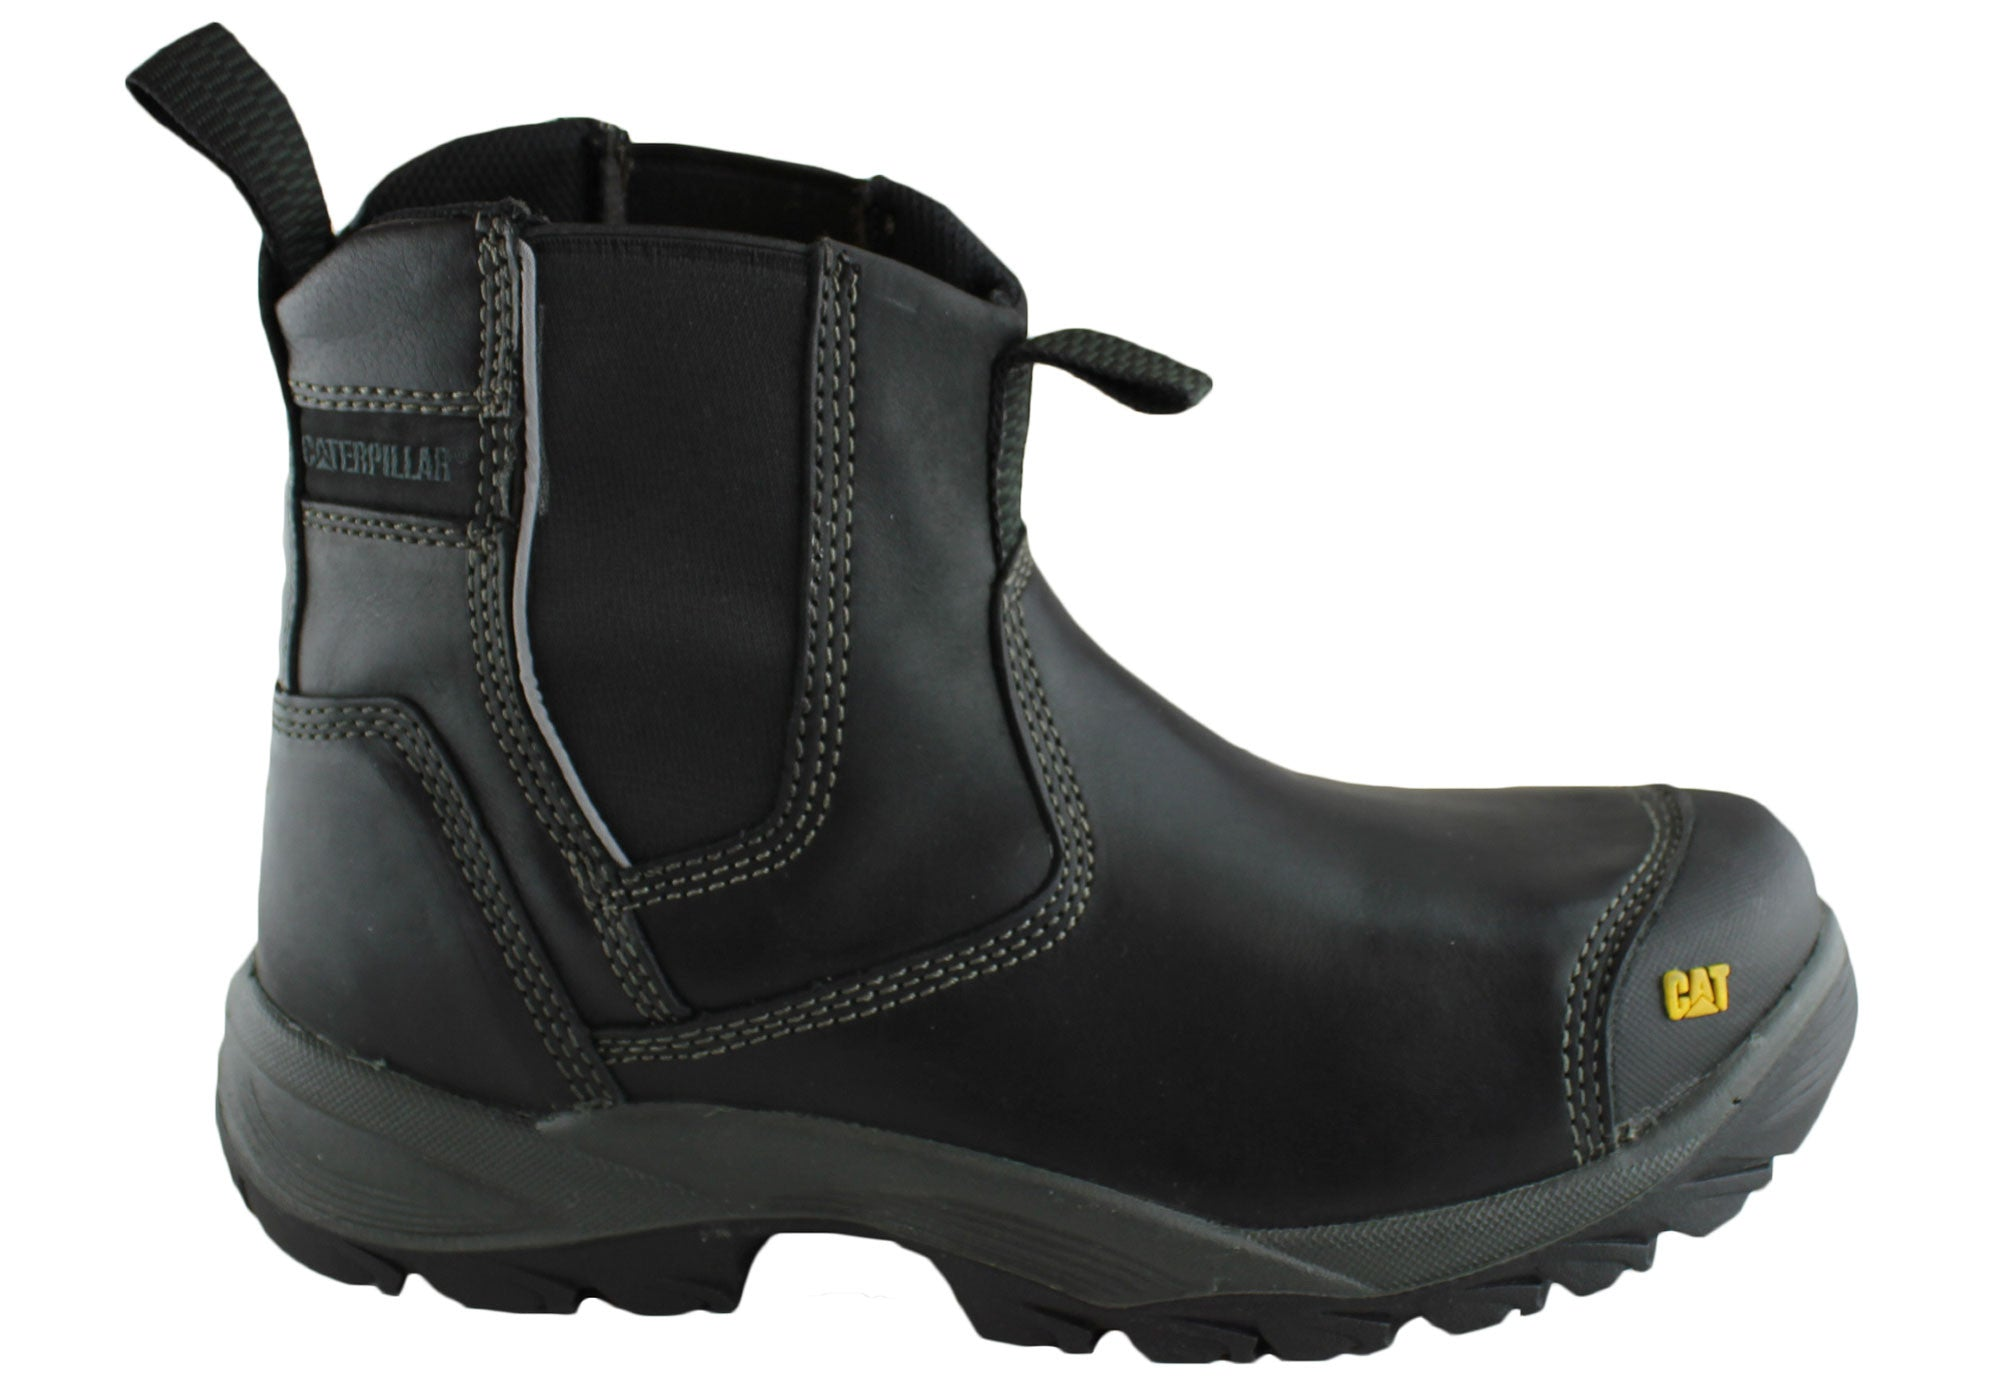 Caterpillar Cat Propane Mens Steel Toe Safety Boots Brand House Direct